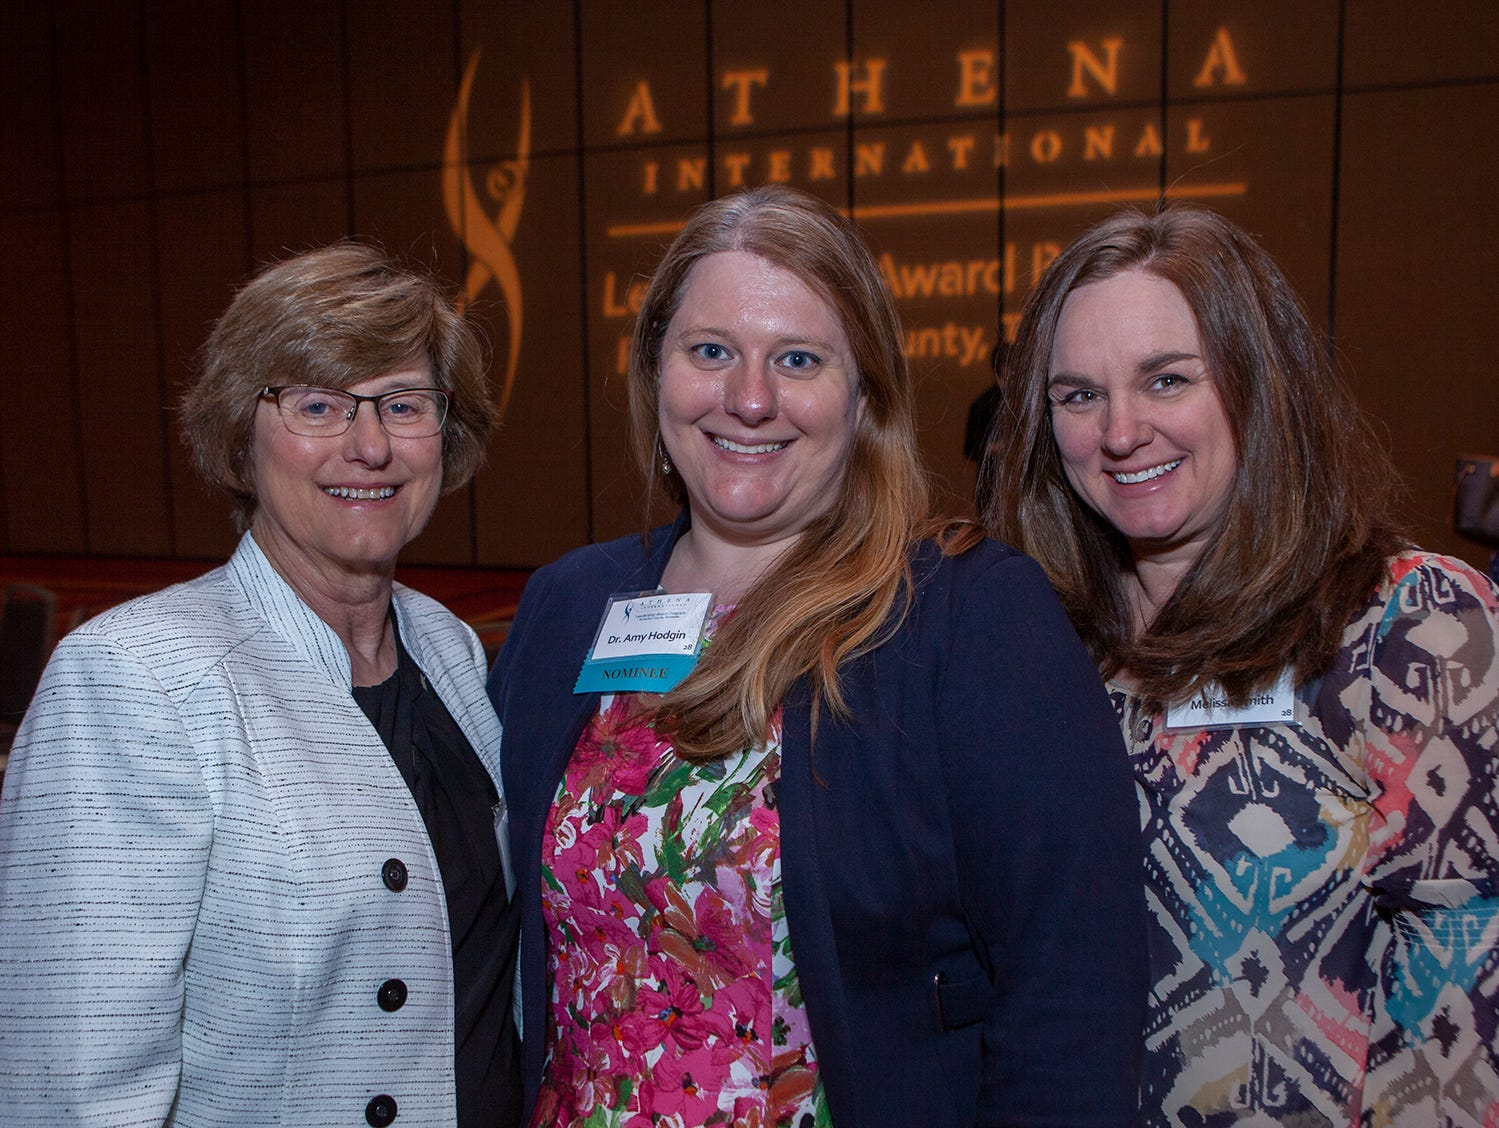 Betty Hodgin, Dr. Amy Hodgin and Melissa Smith at the annual ATHENA Leadership Awards. Hosted by Rutherford Cable, ceremony was held Friday, April 12, 2019 at Embassy Suites Murfreesboro.